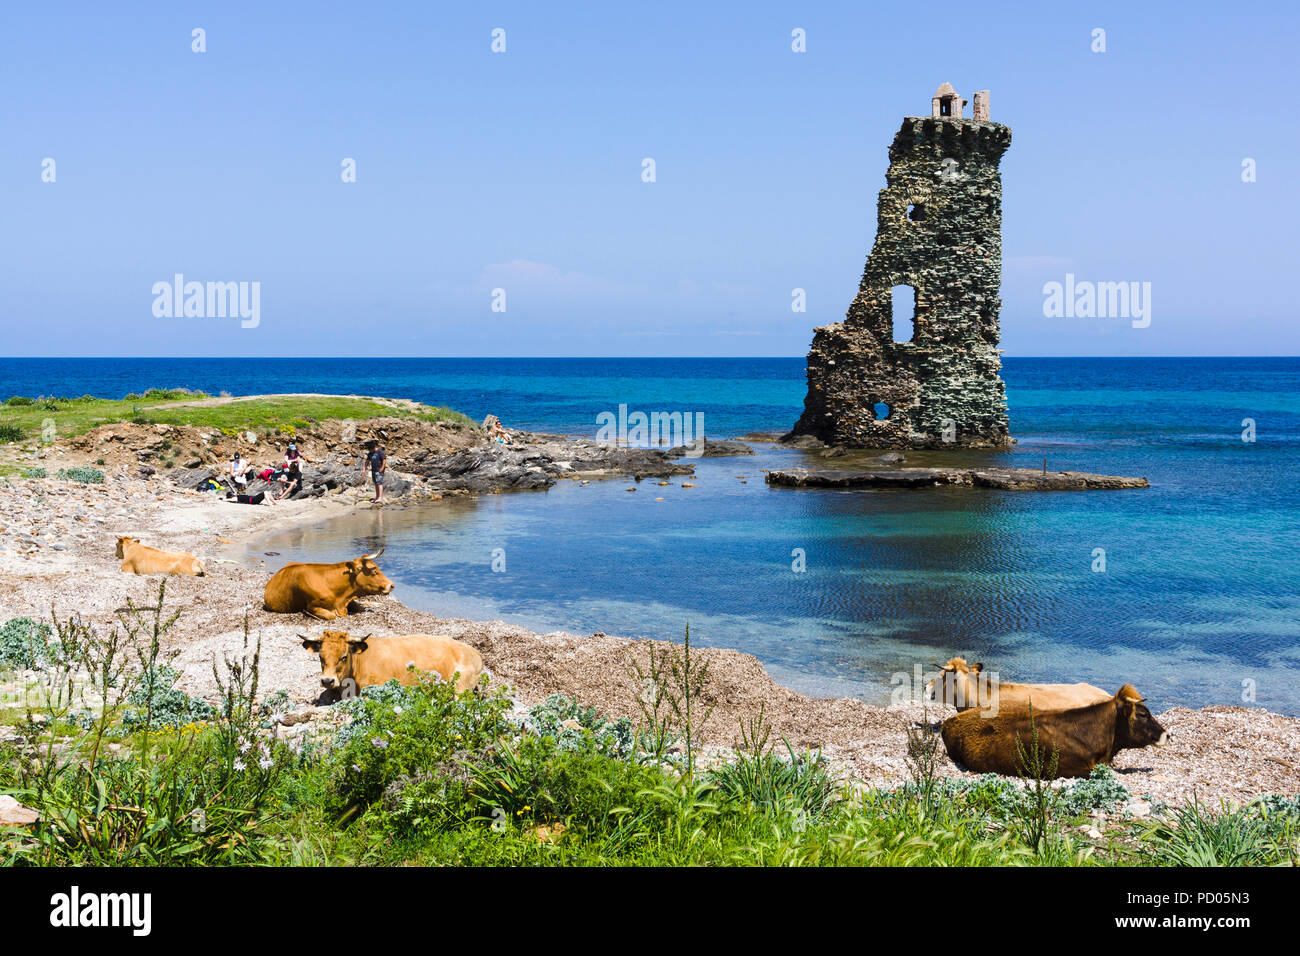 Cows on beach in front of Santa Maria Rogliano Genoese tower. Sentier des douaniers, Cap Corse, Corsica, France. - Stock Image